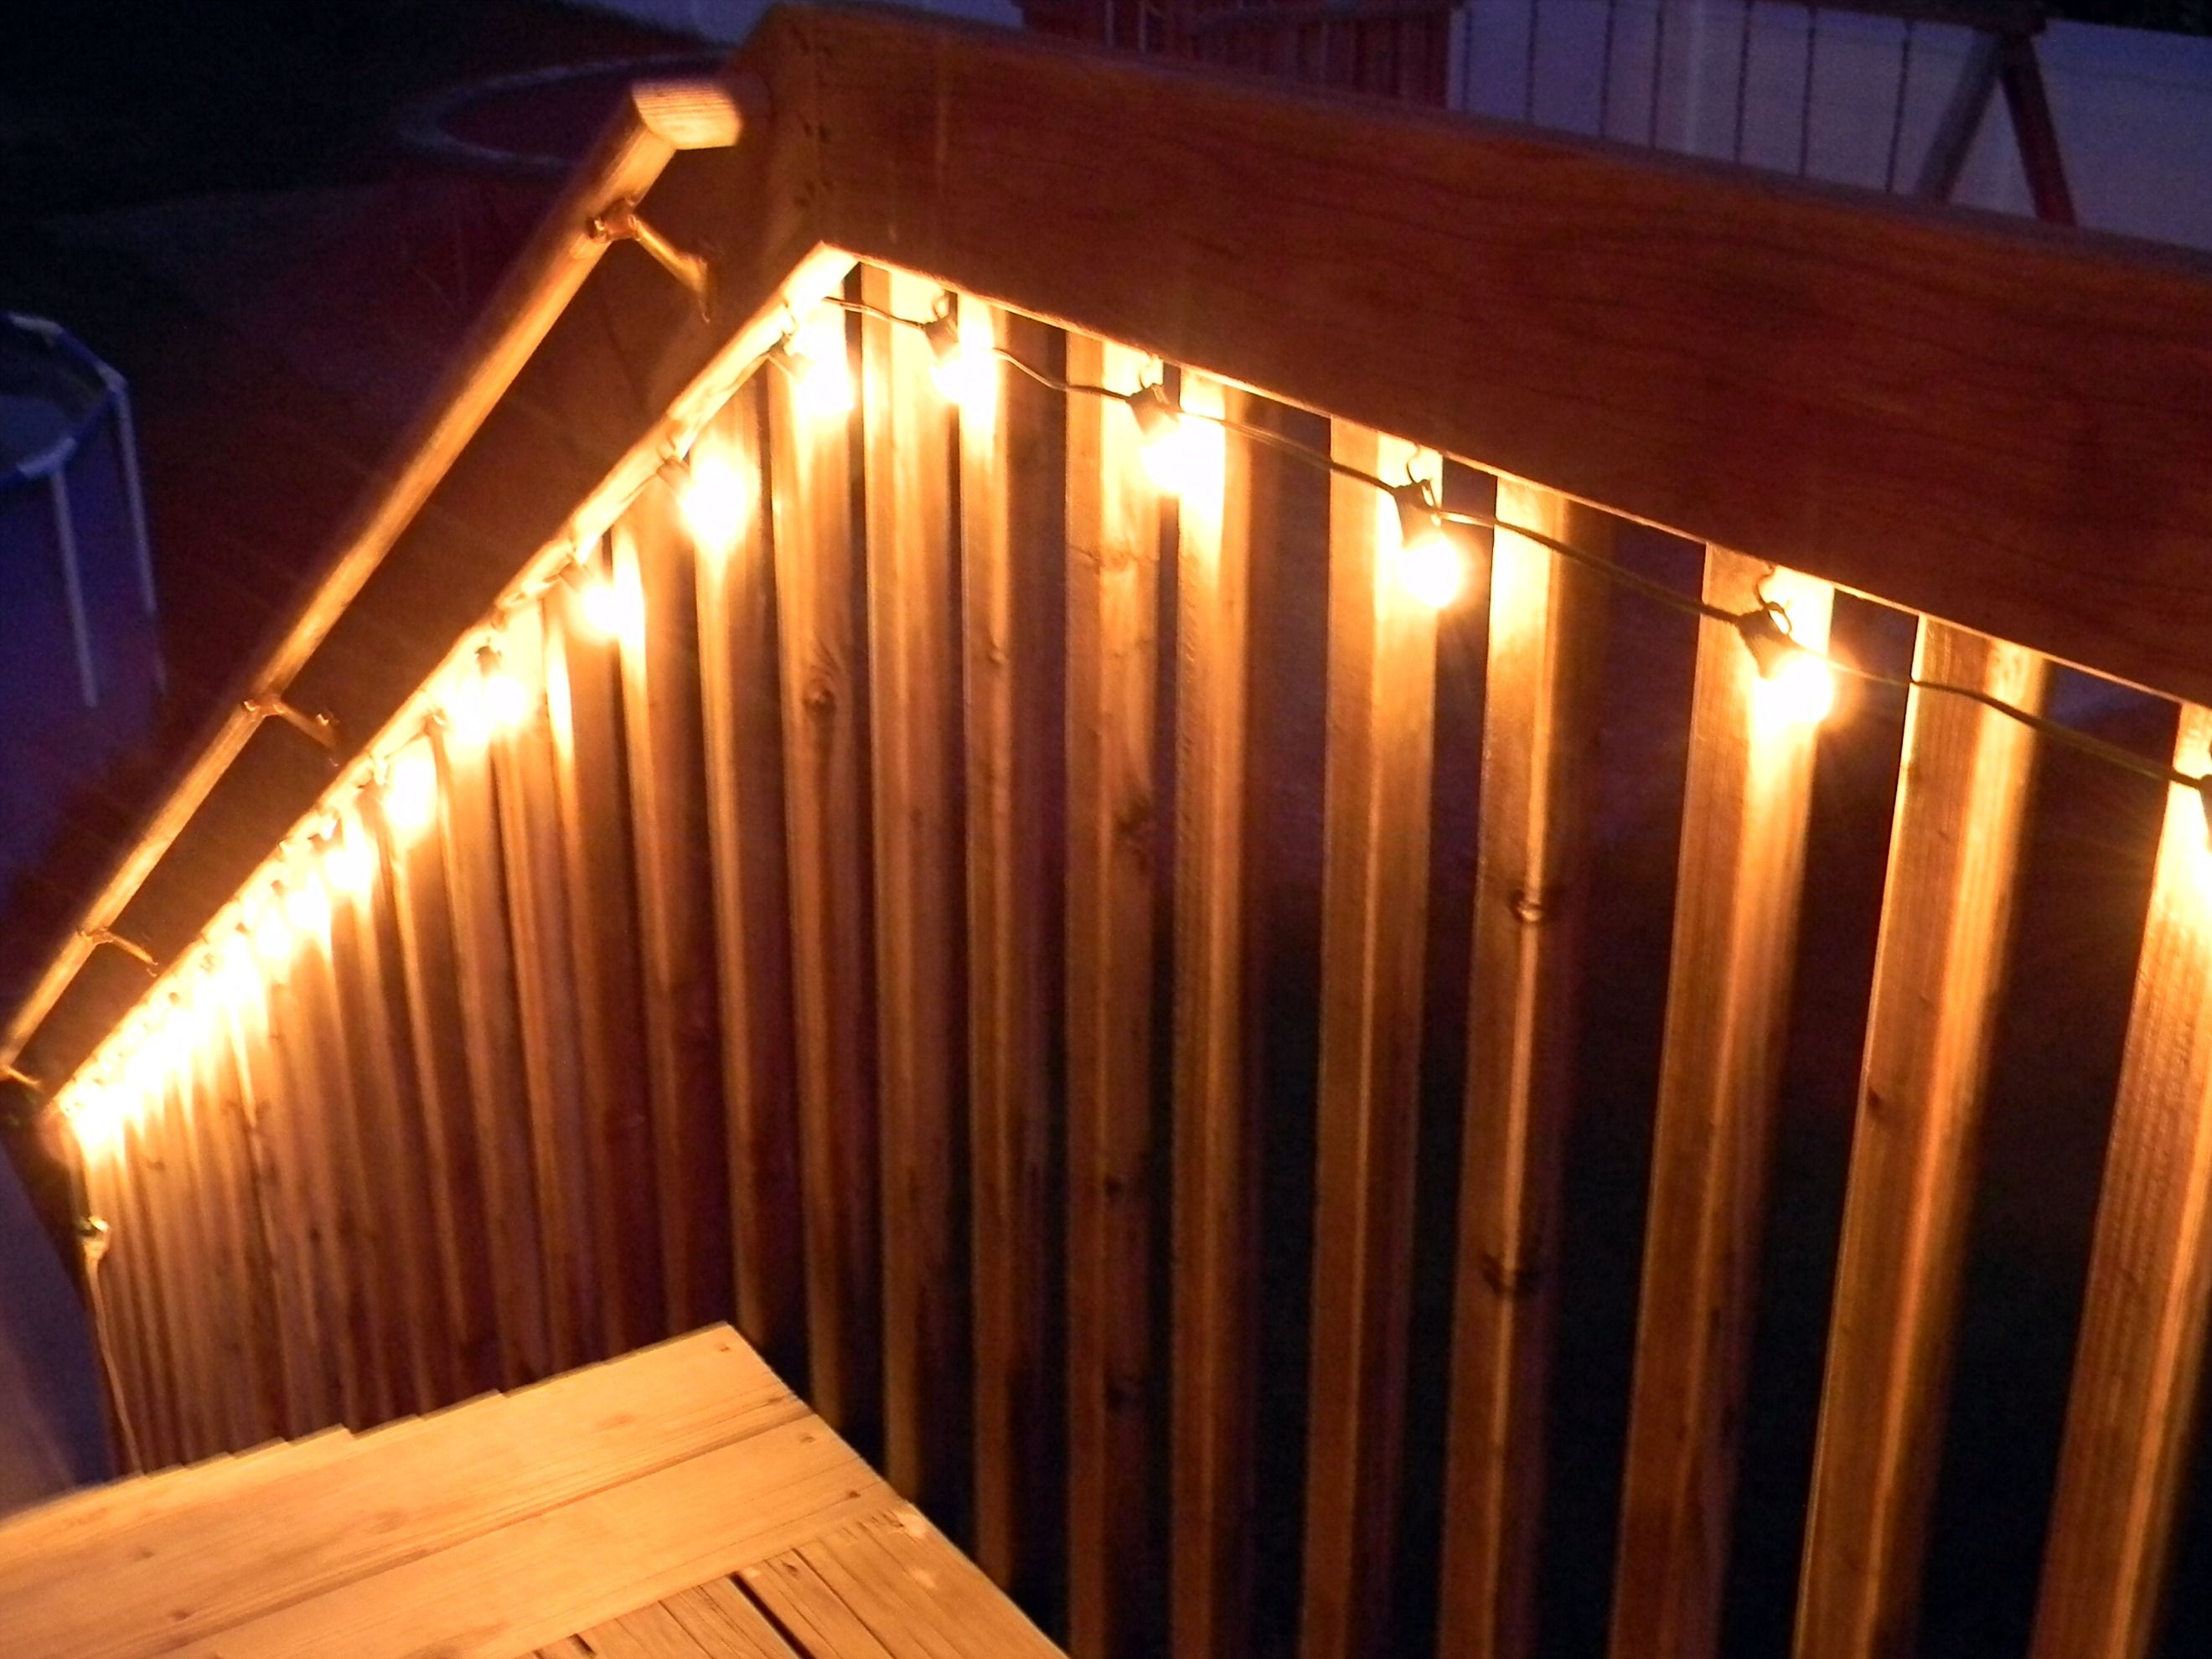 Quick Tip #5 - Lighting the Deck | Deck decorating, Deck ... on deck lighting product, outdoor deck lighting, deck lighting kits, lake deck lighting, deck lighting at night, deck rail safety, deck led lighting, deck rail cables, deck lighting fixtures, composite deck lighting, deck wall lighting, deck track lighting, deck lighting systems, railing lighting, deck rail construction, deck fence lighting, deck rail tables, deck rail wiring, lowe's deck lighting, deck floor lighting,